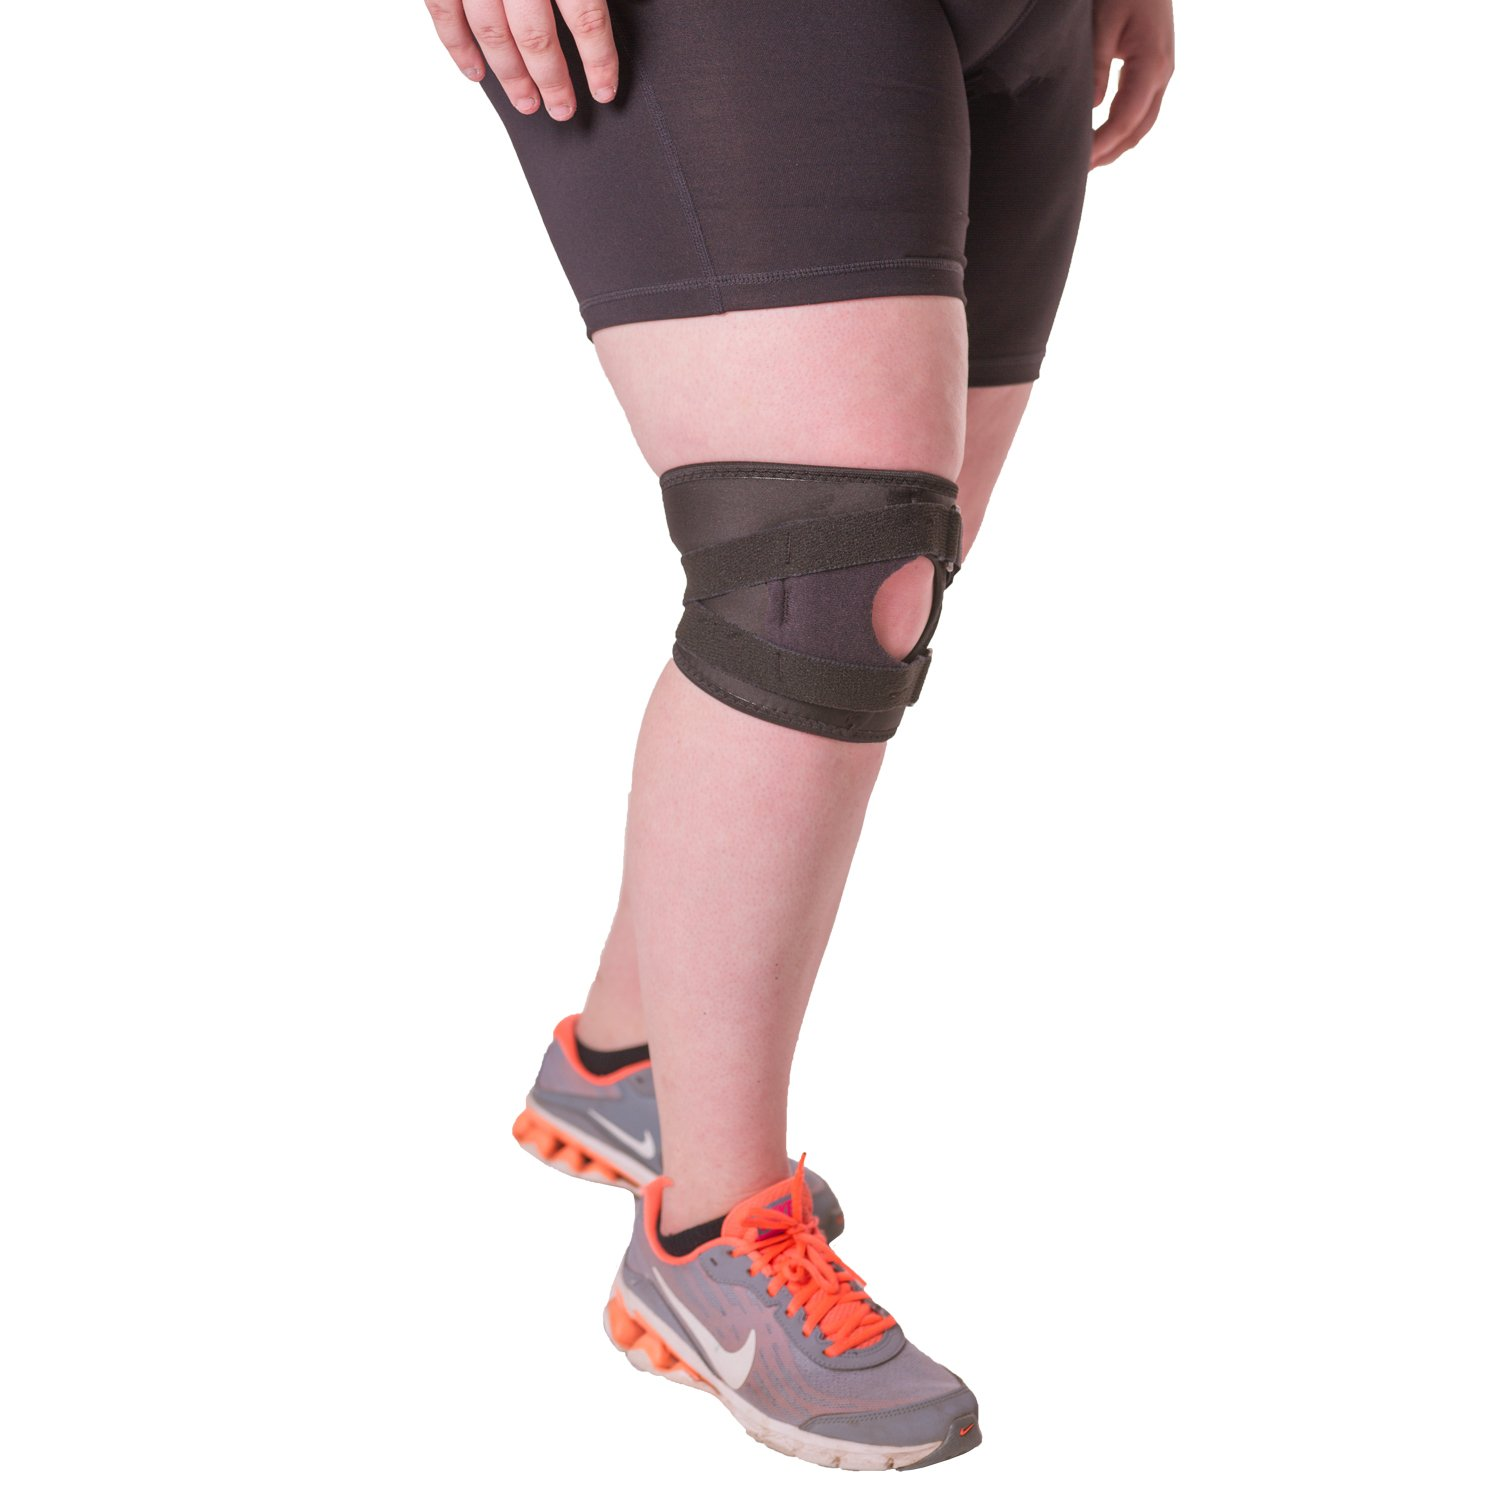 BraceAbility Plus Size Patellar Tracking Short Knee Brace | XXL Walking & Exercise Support Sleeve Stabilizer for Post Kneecap Dislocation, Tendonitis, Patellofemoral Pain & Arthritis (2XL) by BraceAbility